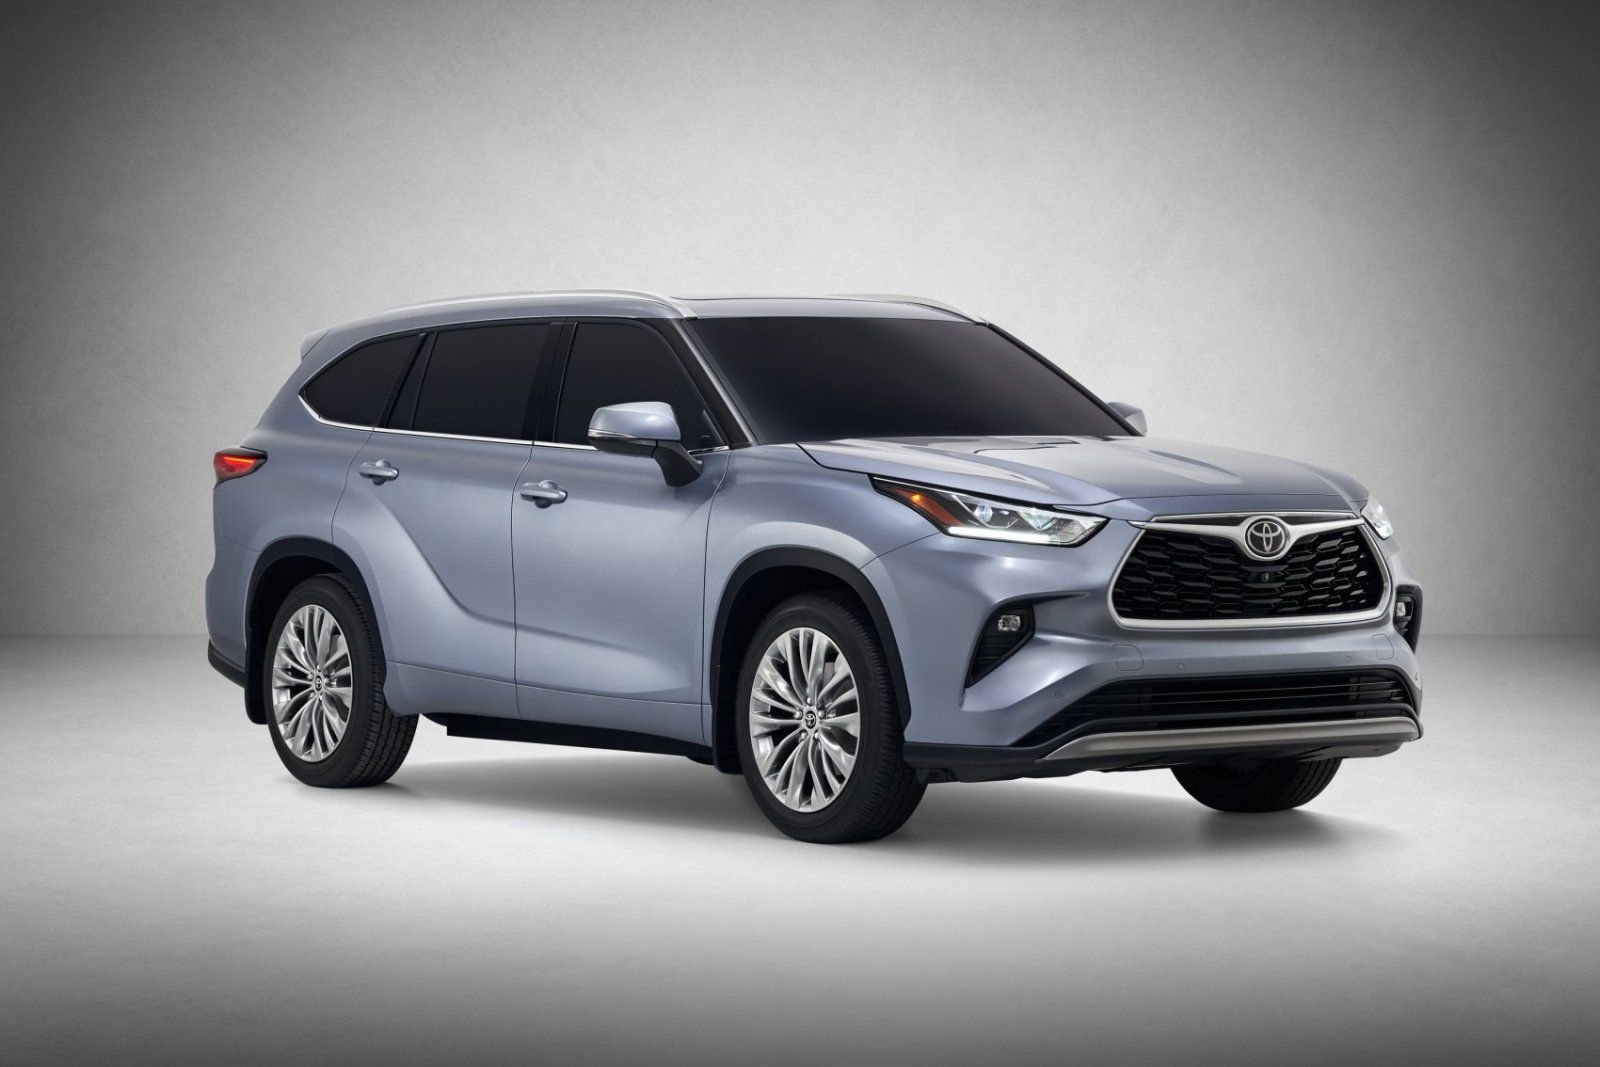 Toyota Brings More Refinement Technology To The 2020 Highlander Cuv Latest News Car Revs Daily Com Toyota Highlander Hybrid Toyota Suv Toyota Highlander